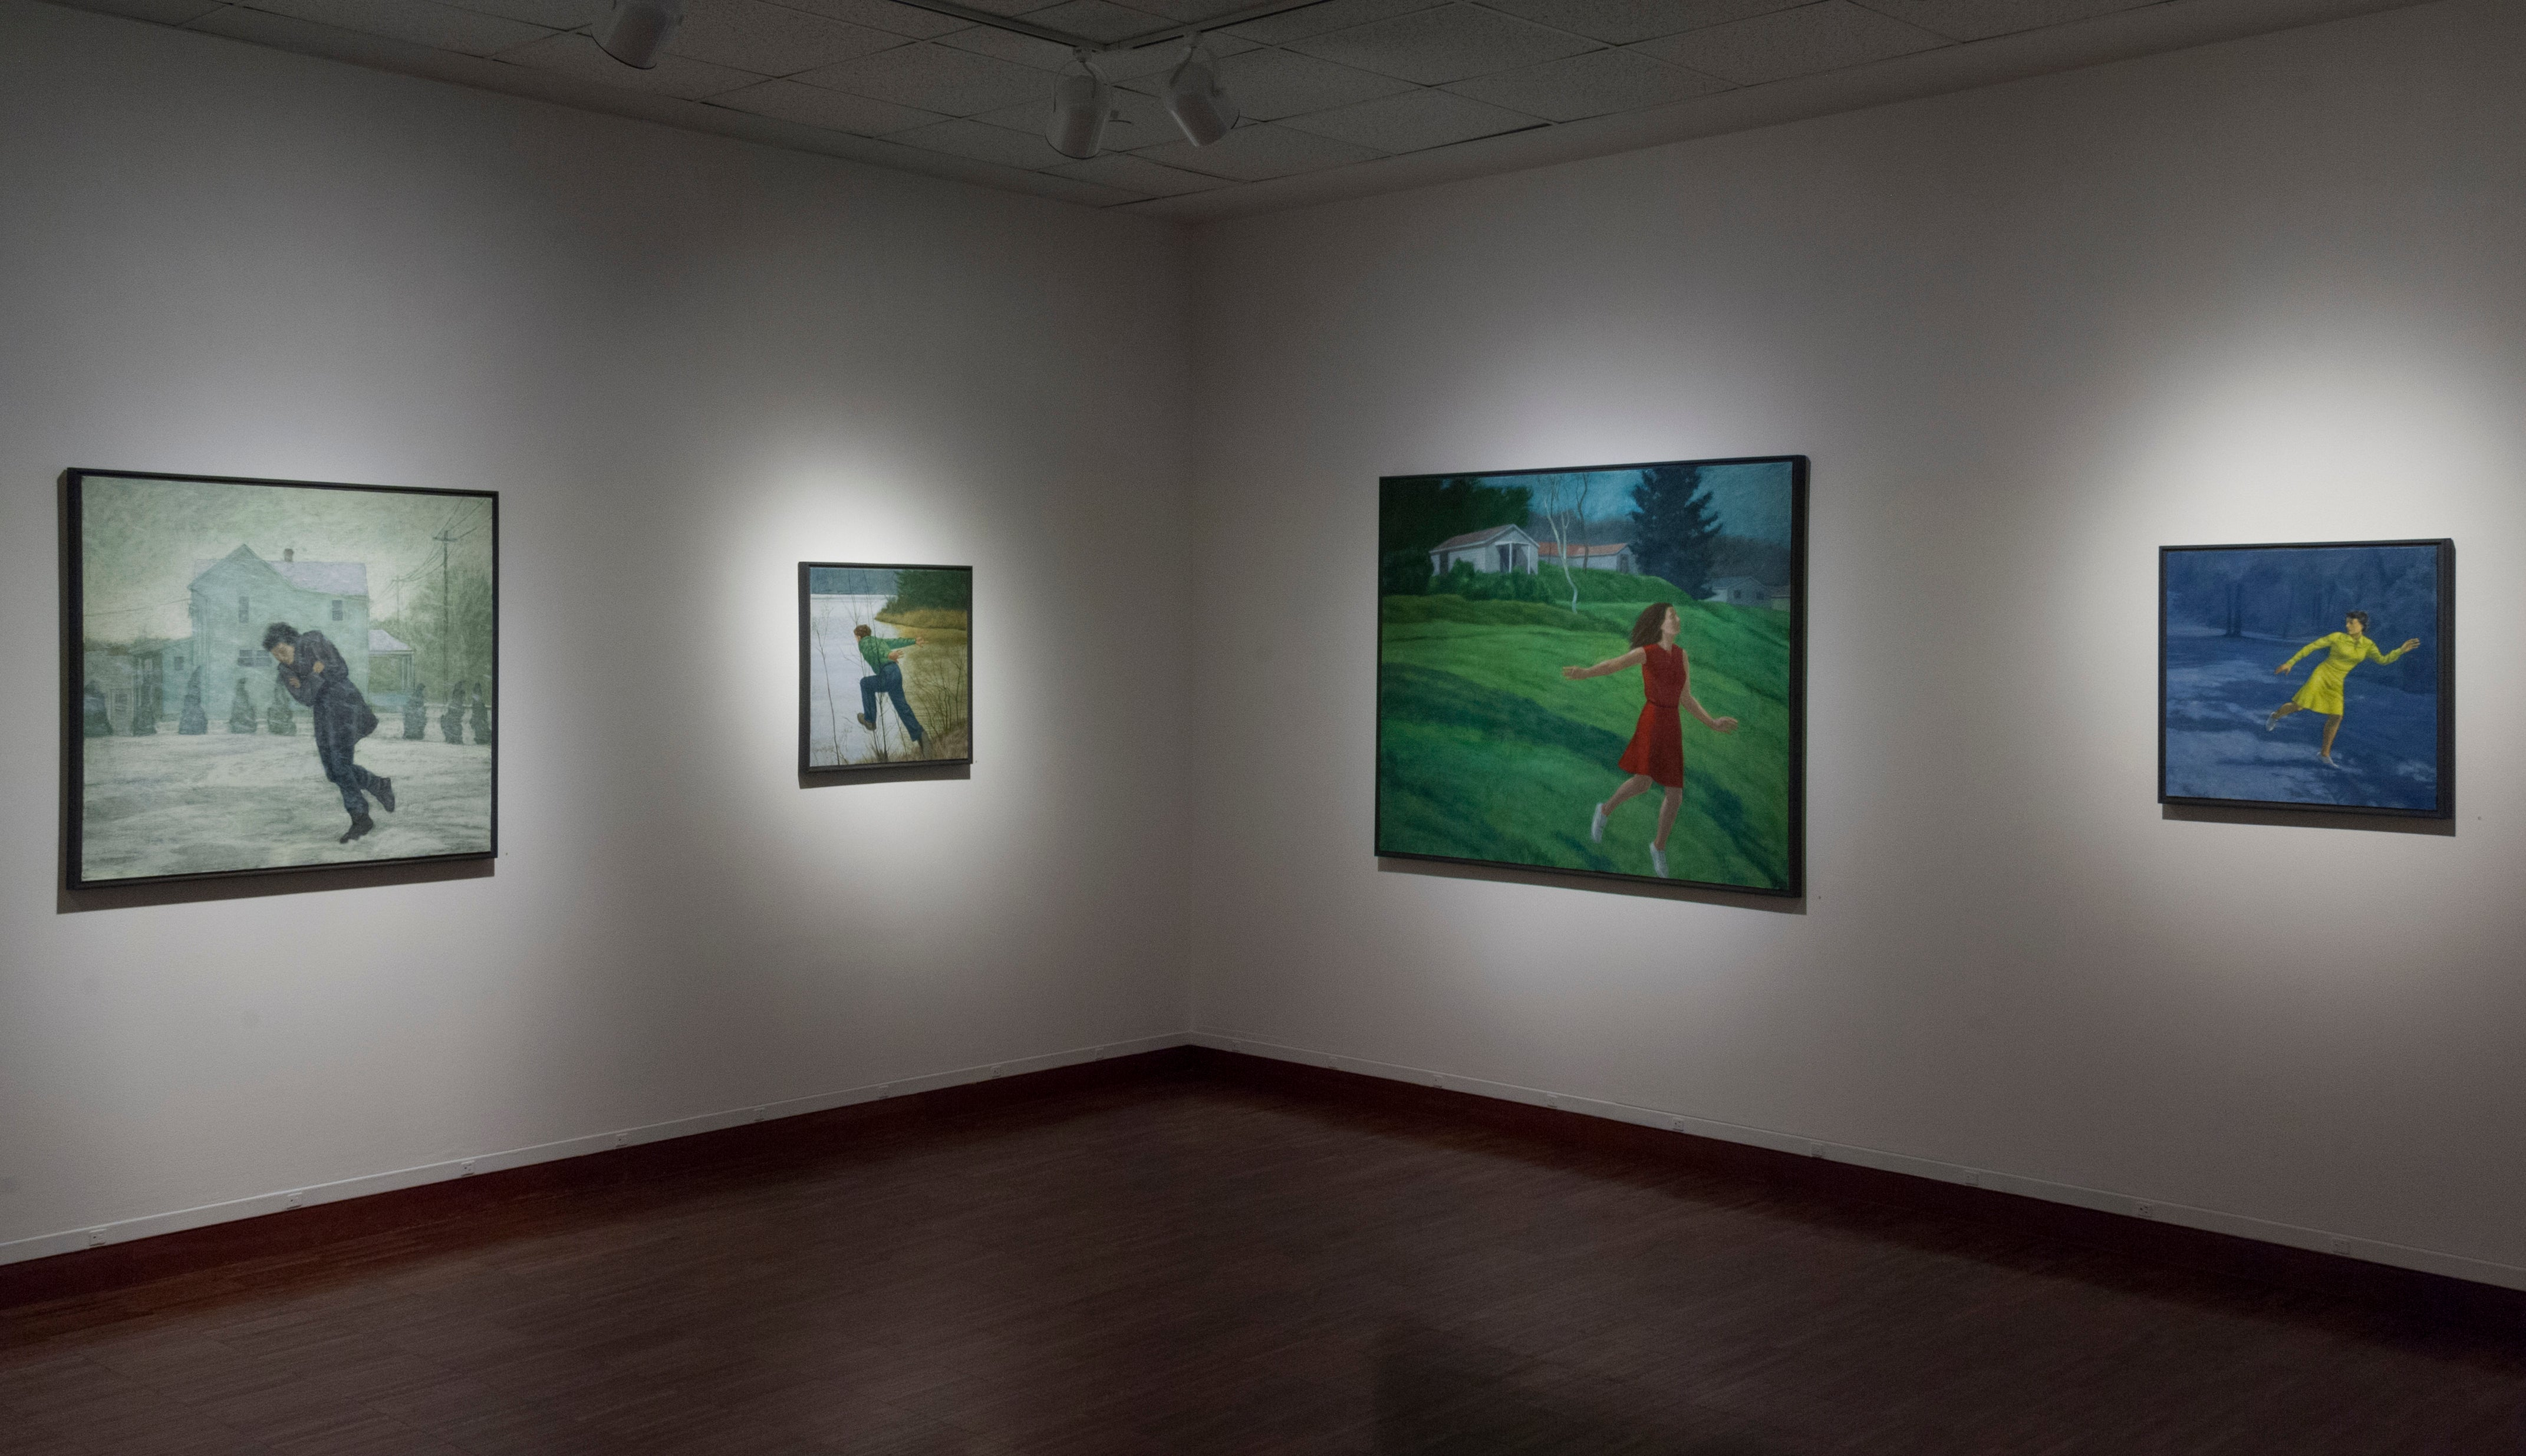 Kroutel, Ron - installation view 4